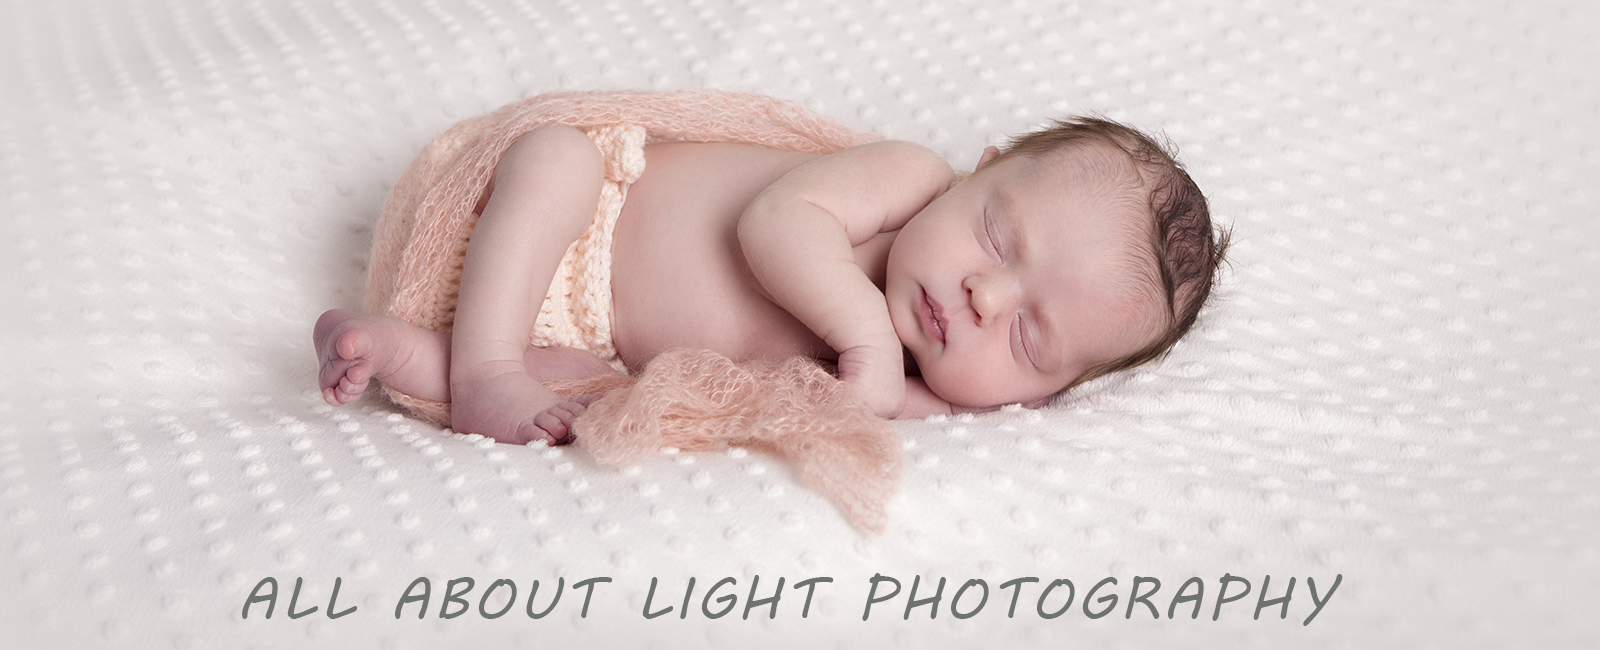 All About Light Photography